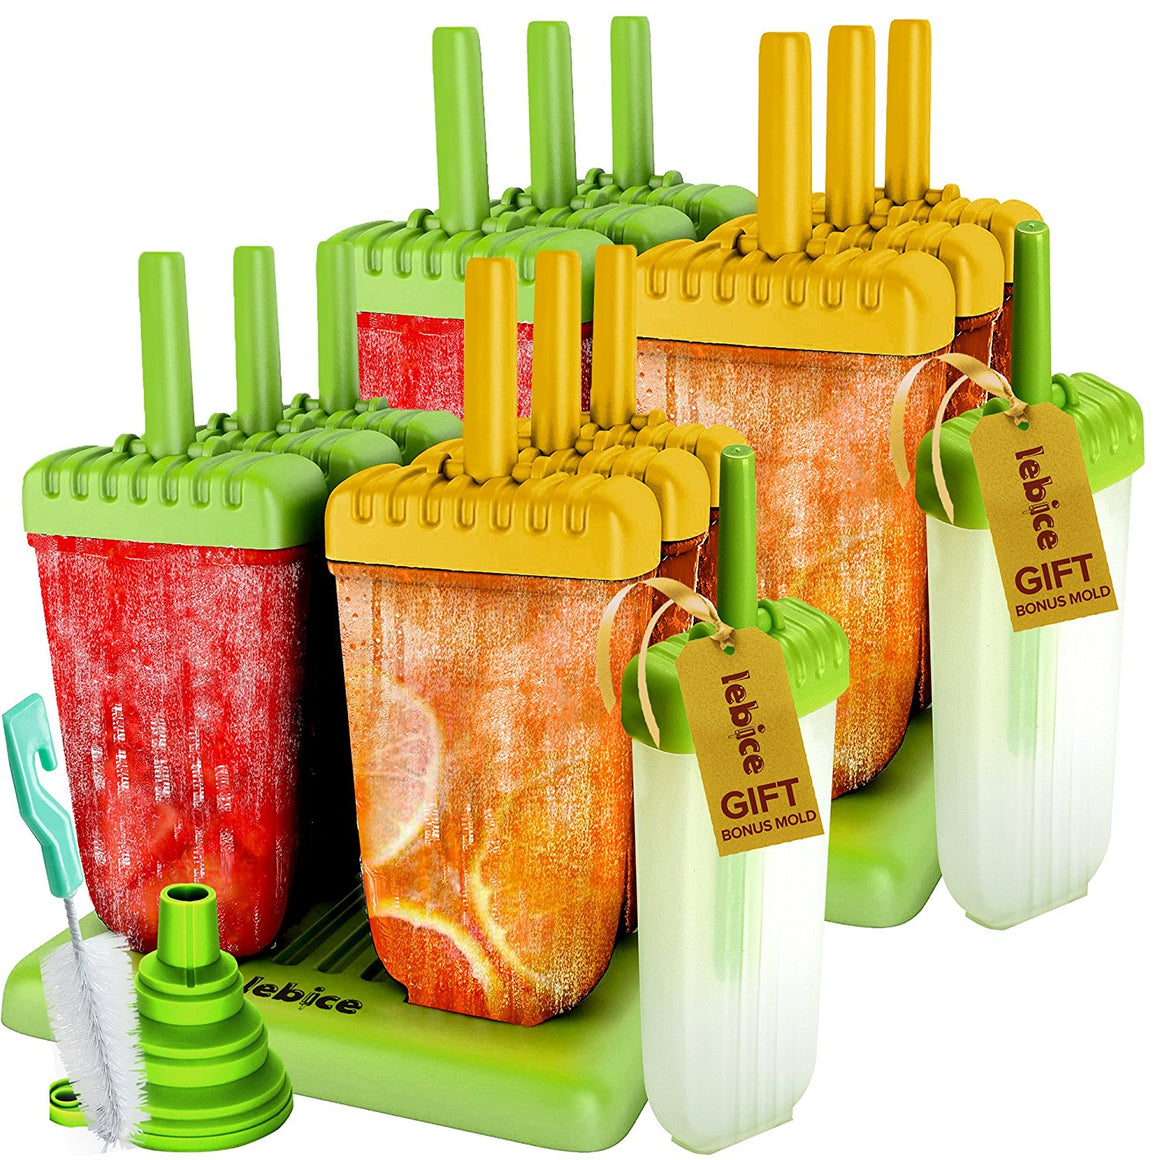 Popsicle Molds Double Set - BPA Free - 12 Ice Pop Makers + 2 Extra Molds + 2 Silicone Funnels + 2 Cleaning Brushes + Recipes E-book - by Lebice